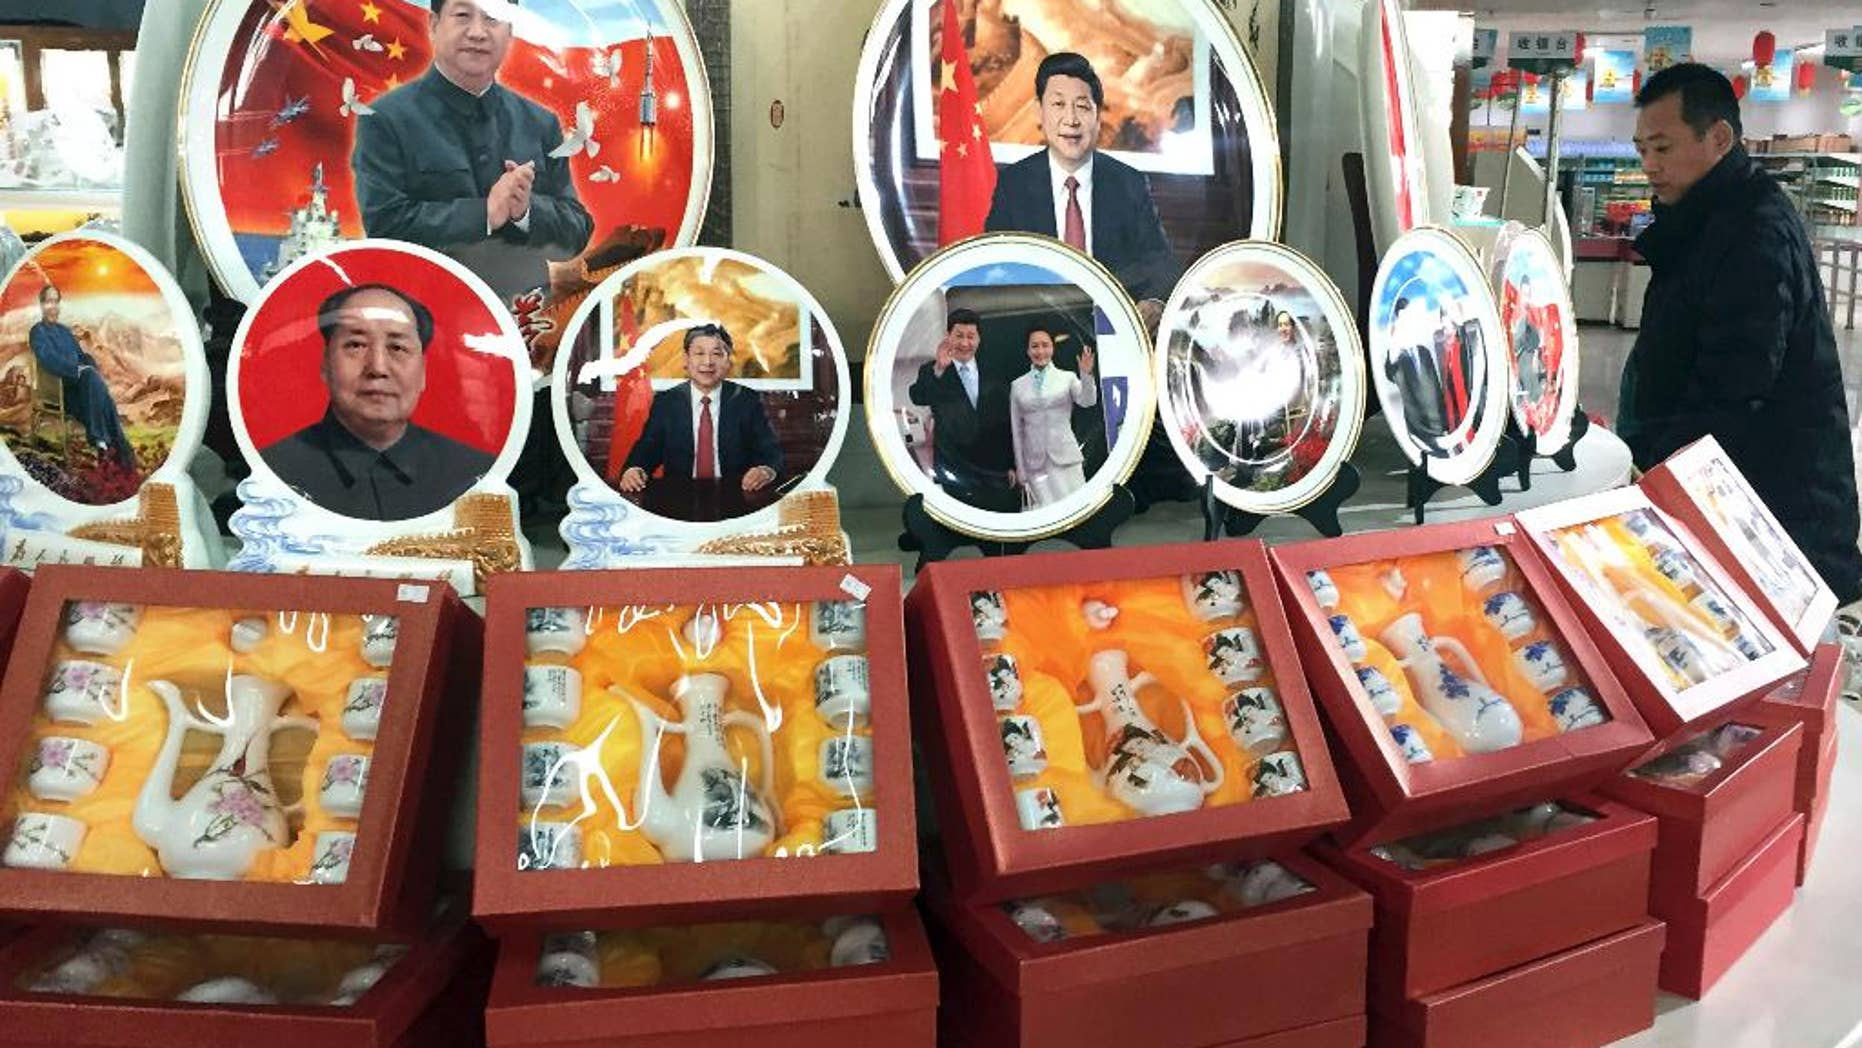 In this photo taken Friday, Dec. 30, 2016, a Chinese man walks past ceramic plates with images of Chinese President Xi Jinping displayed at a rest stop near Beijing. During his annual New Year Eve's speech, Chinese President Xi Jinping says his government will continue to focus on poverty alleviation at home and resolutely defending China's territorial rights on the foreign front. (AP Photo/Ng Han Guan)